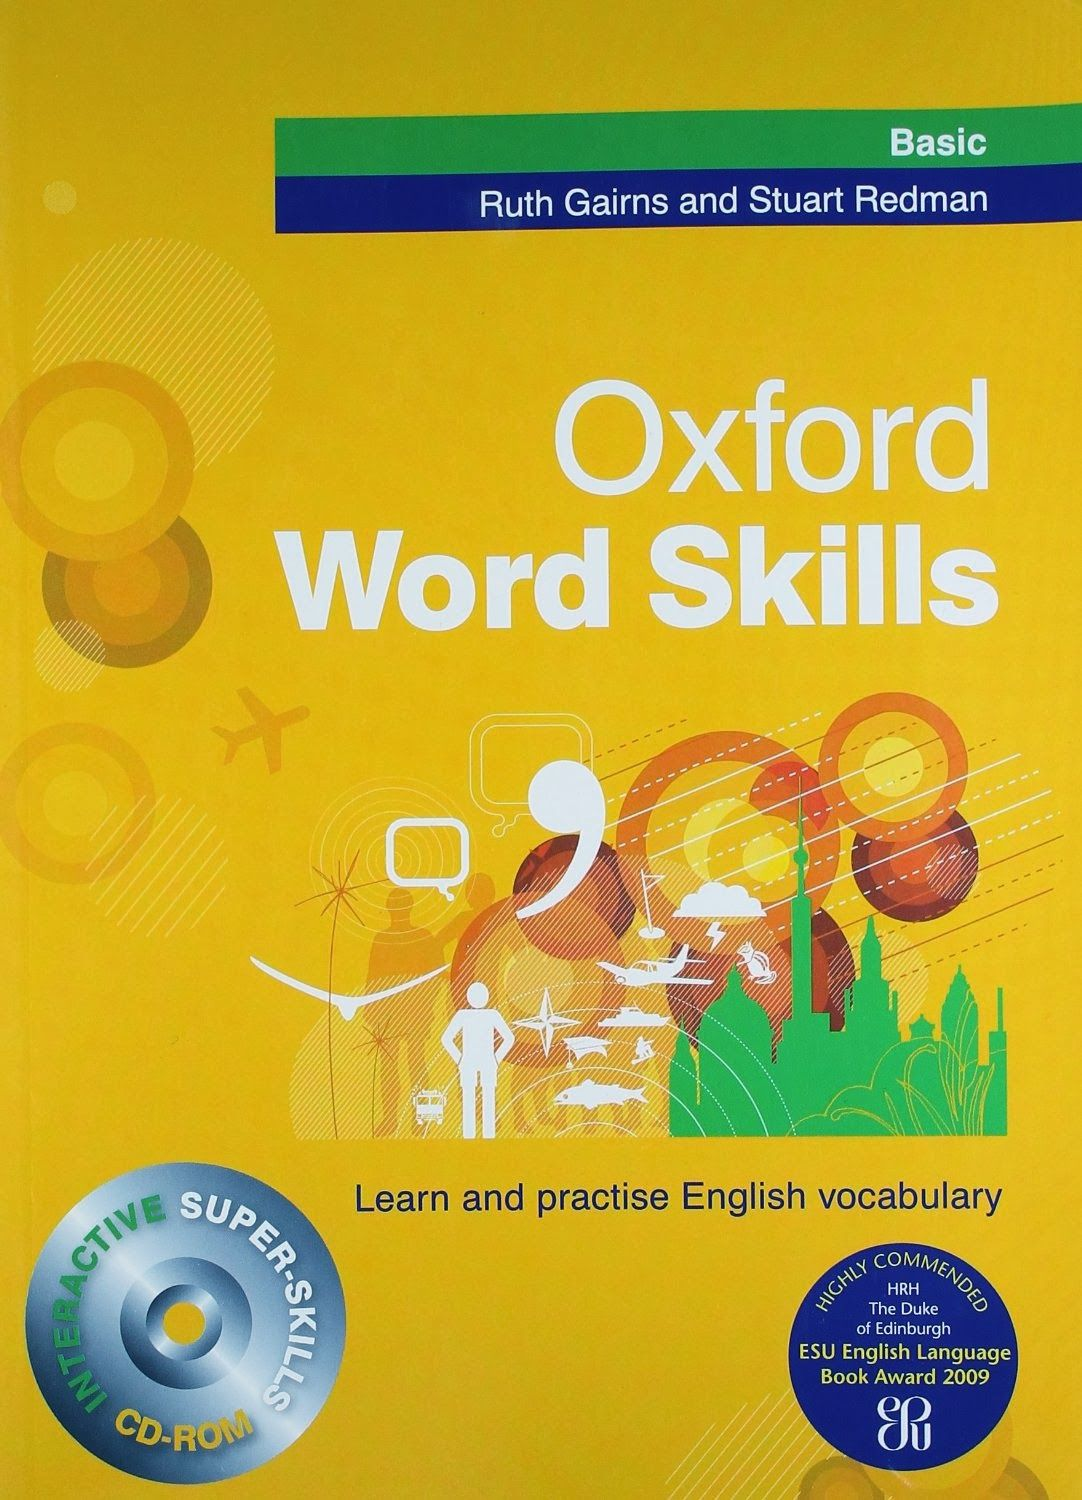 Oxford Word Skills Basic Learn And Practise English Vocabulary Word Skills English Vocabulary English Grammar Book Pdf